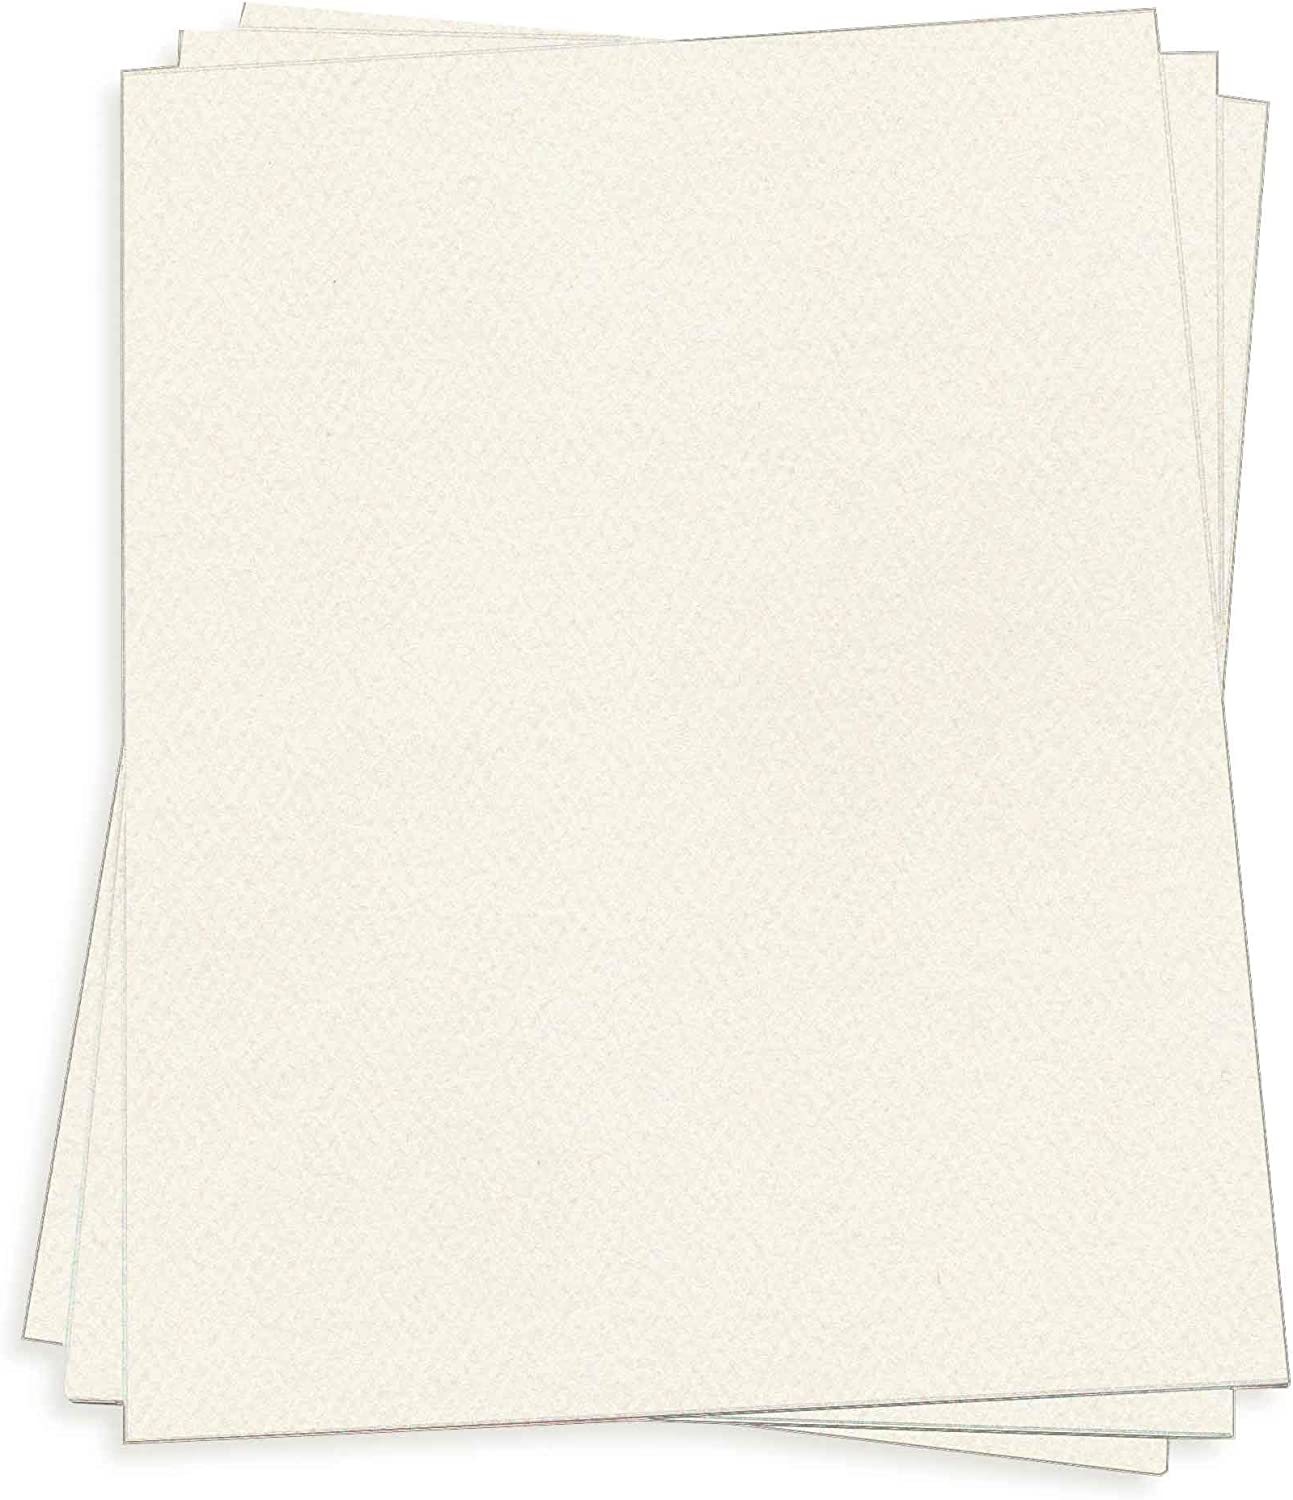 Branded goods Warm Cream Card Stock - 12 x 80lb Felt Pack 18 250 LCI Cover Manufacturer regenerated product